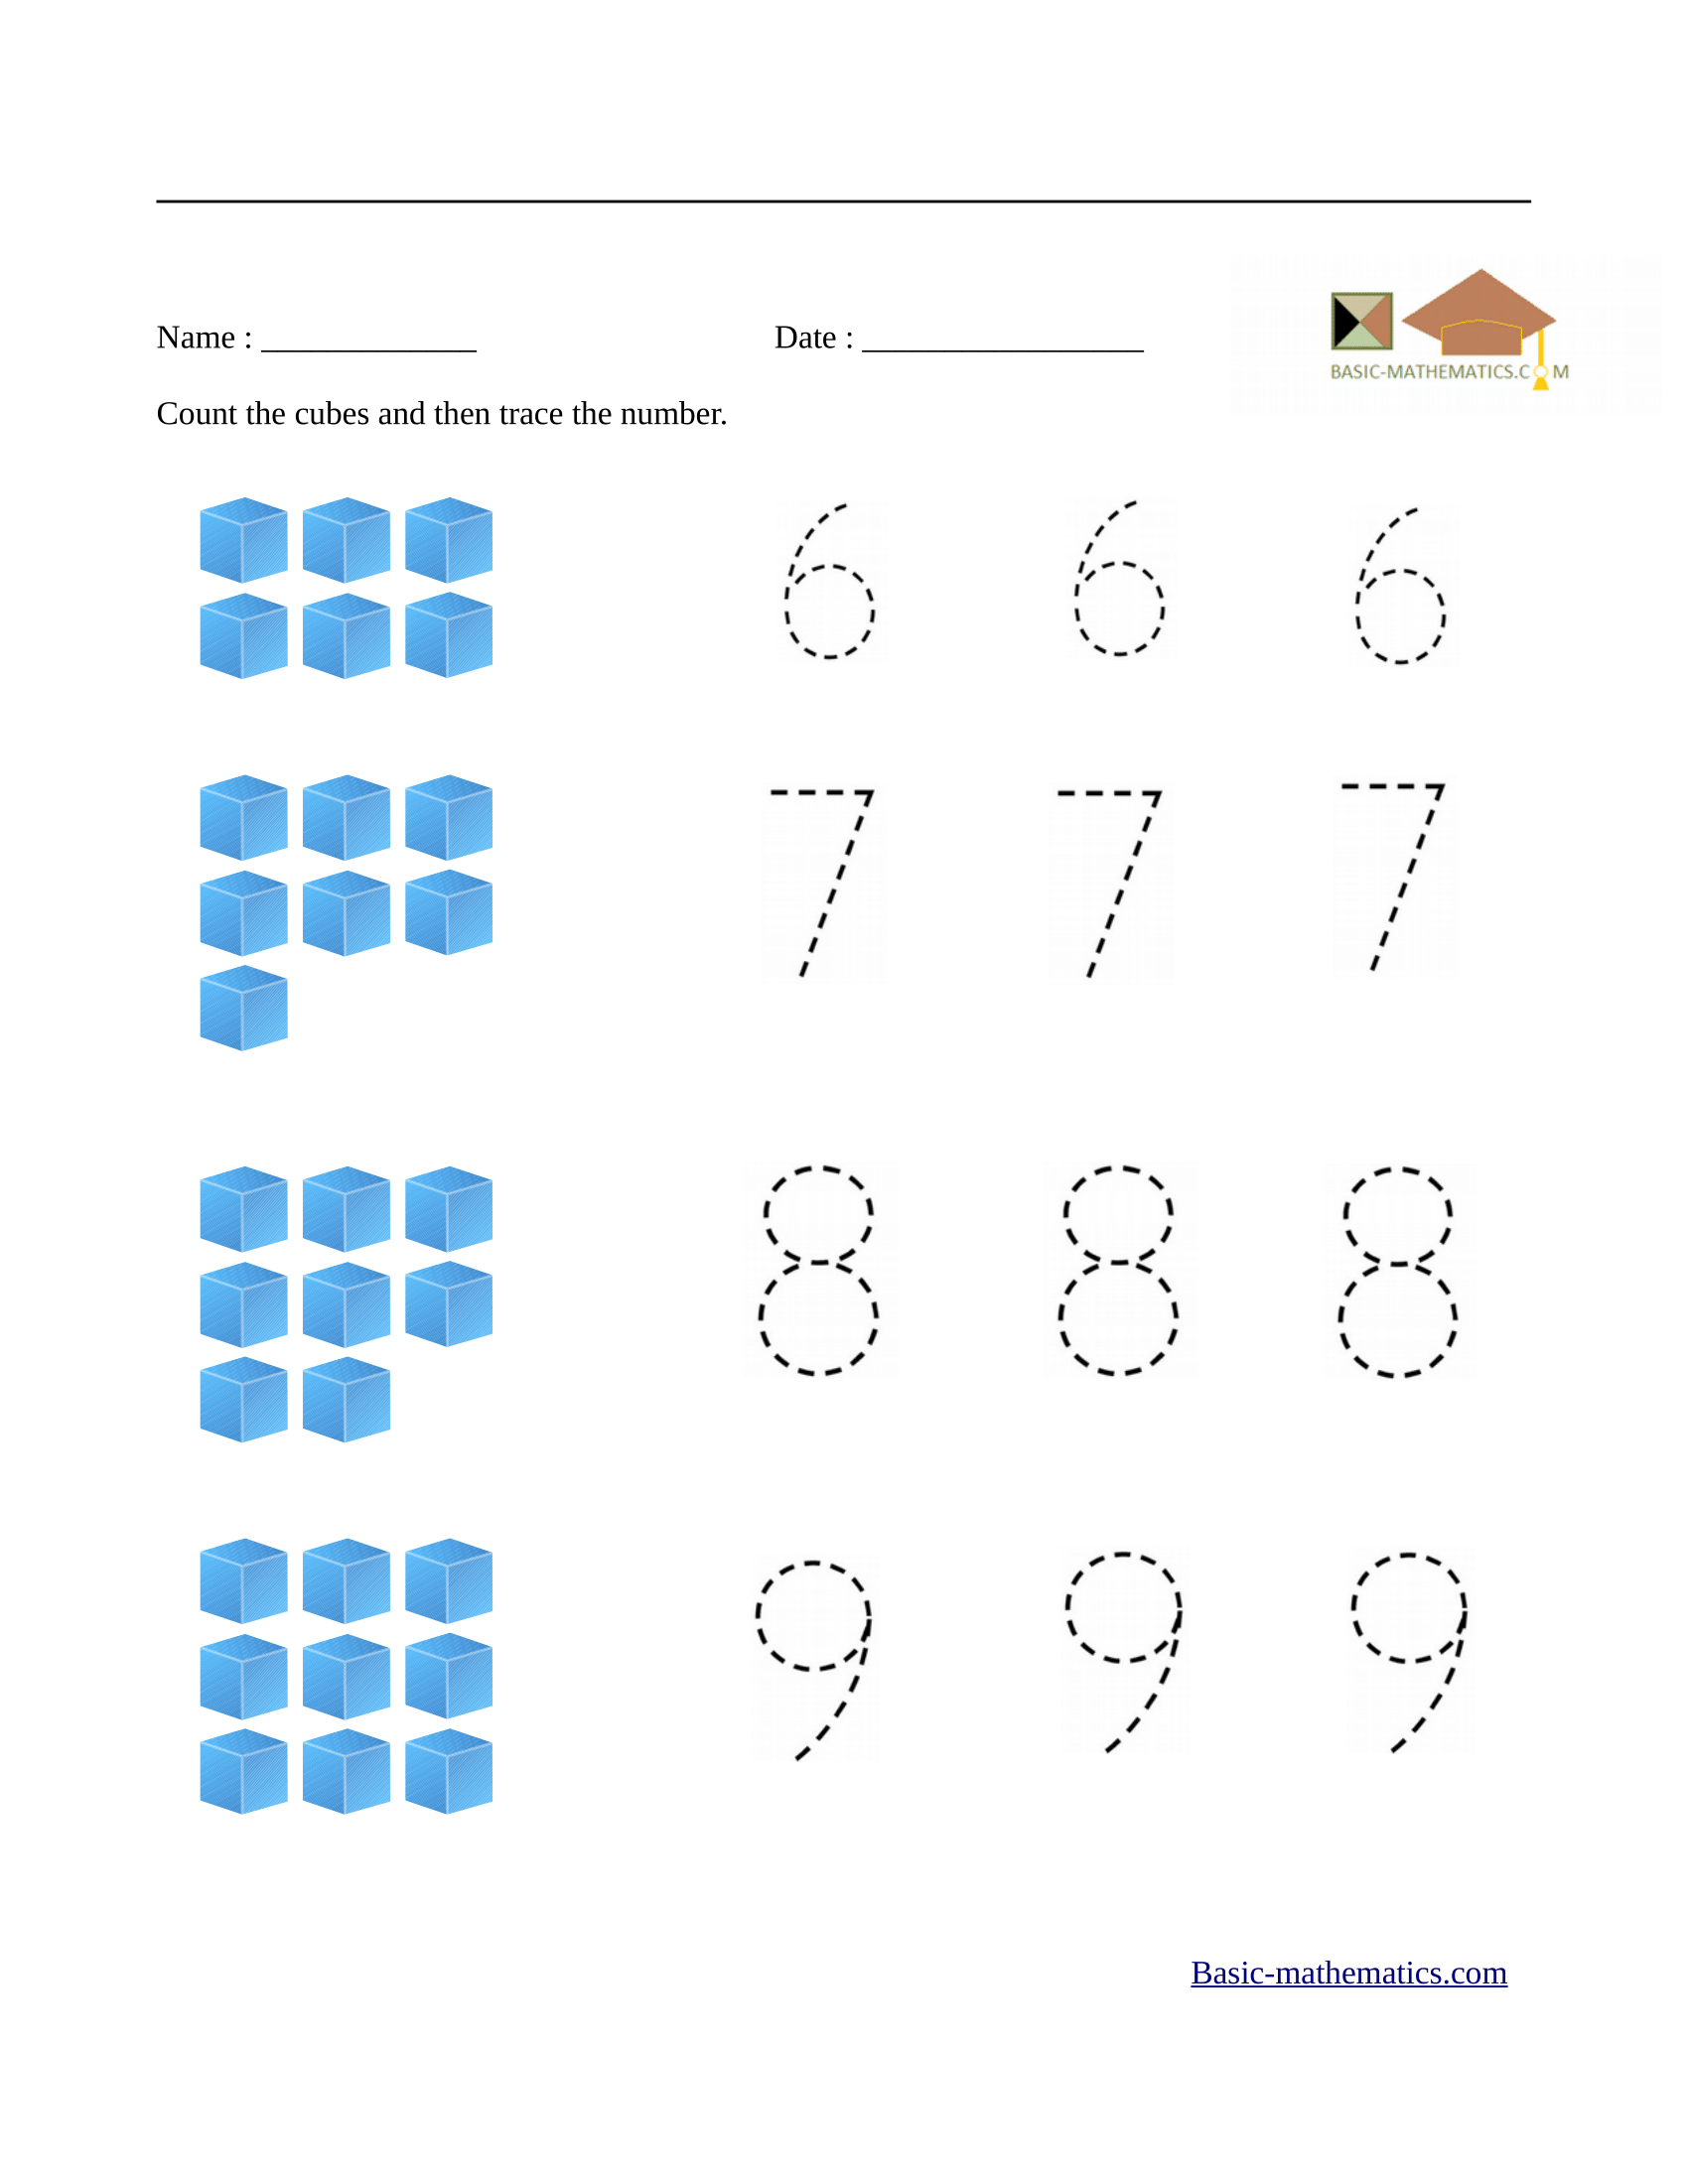 Simple Math Worksheets For Preschoolers : Preschool math worksheets